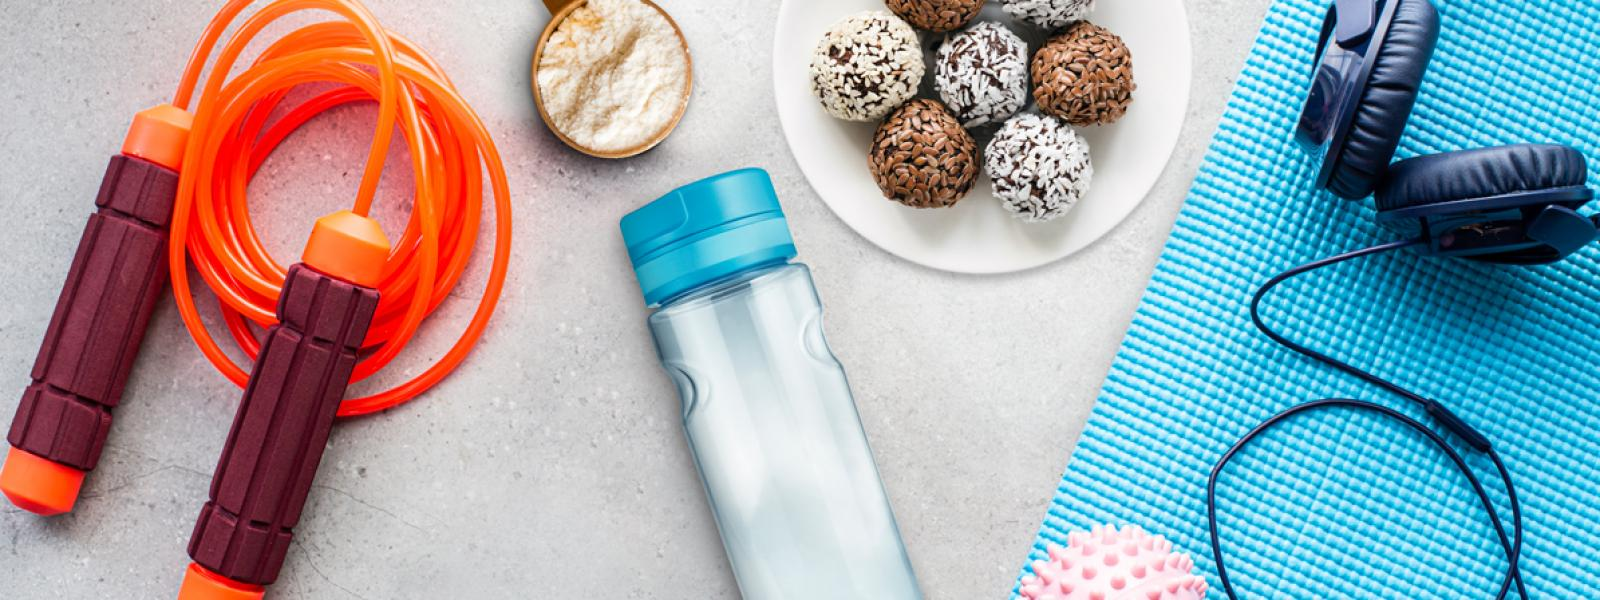 Workout equipment and protein products